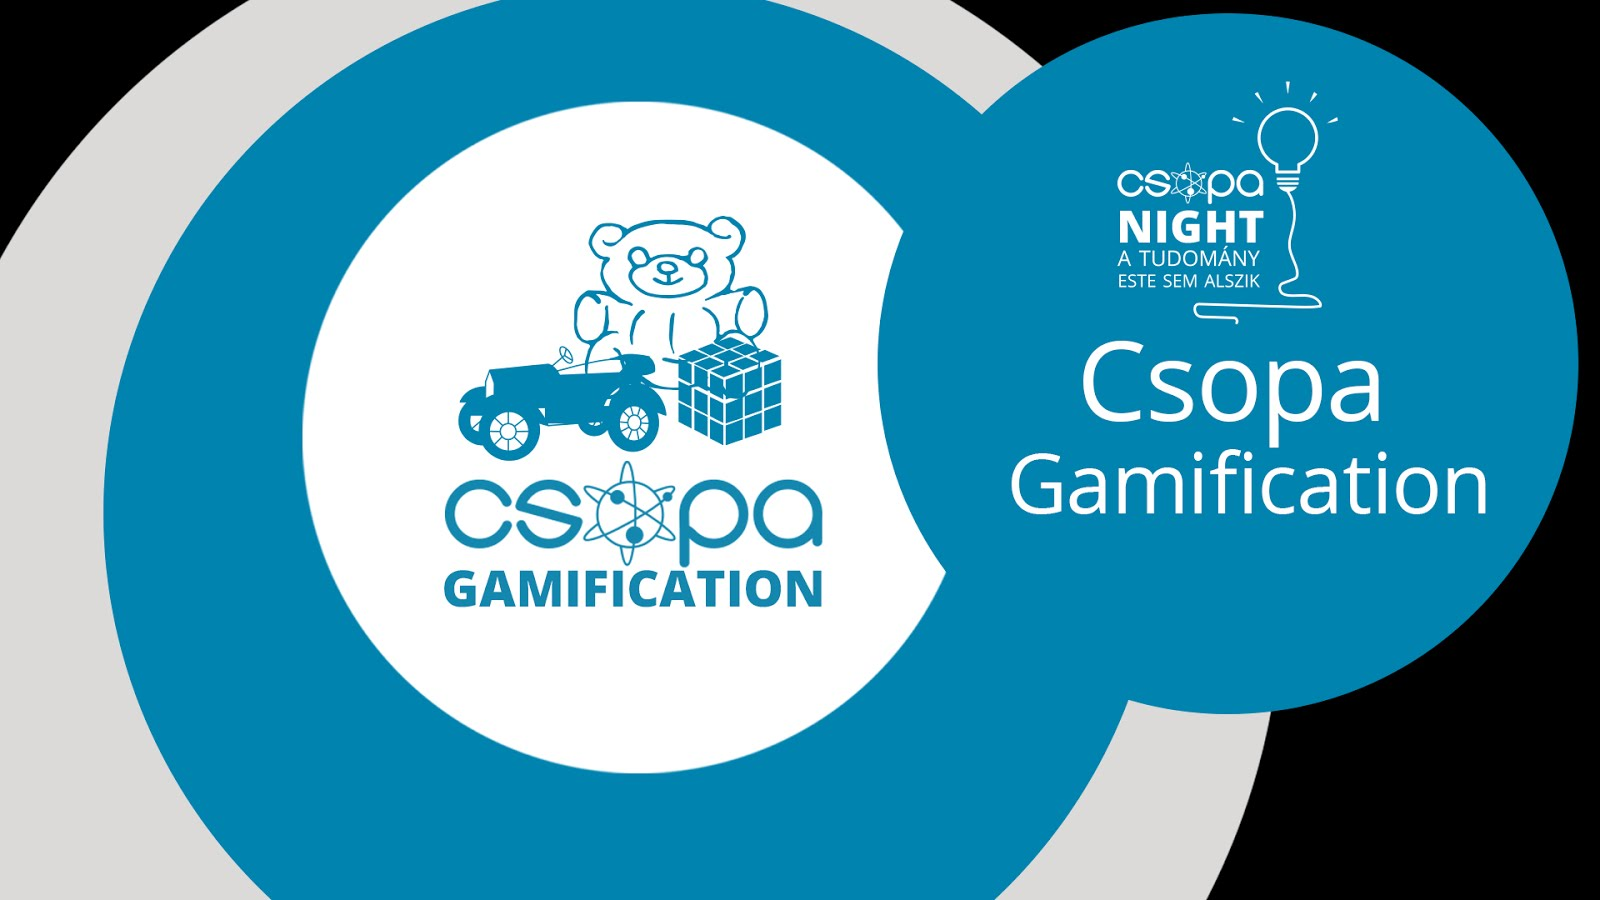 Csopa Gamification